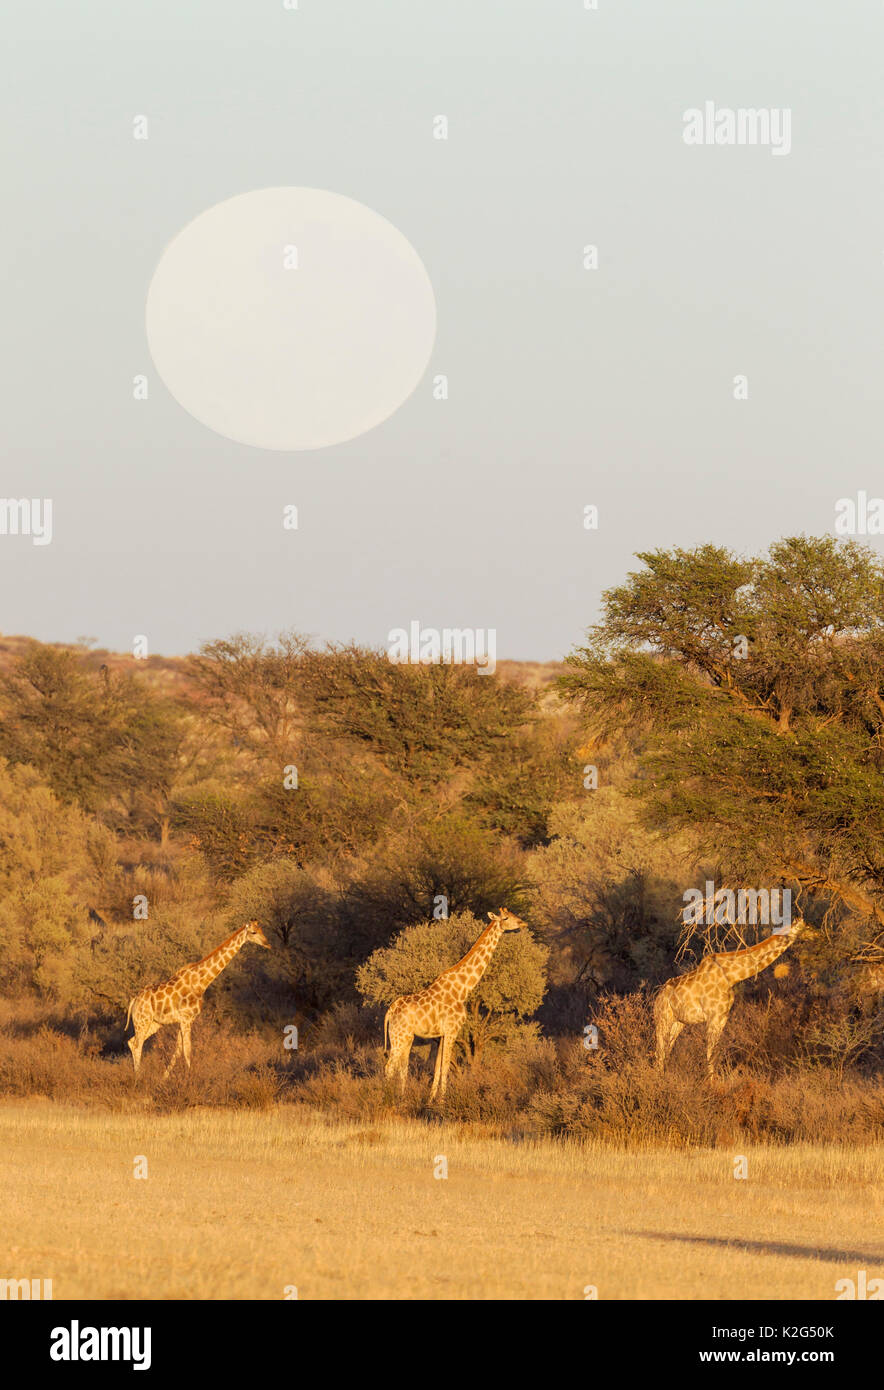 Southern Giraffe (Giraffa giraffa). Feeding in the dry Auob riverbed in the early morning. With full moon. Kalahari Desert, Kgalagadi Transfrontier Park, South Africa. - Stock Image